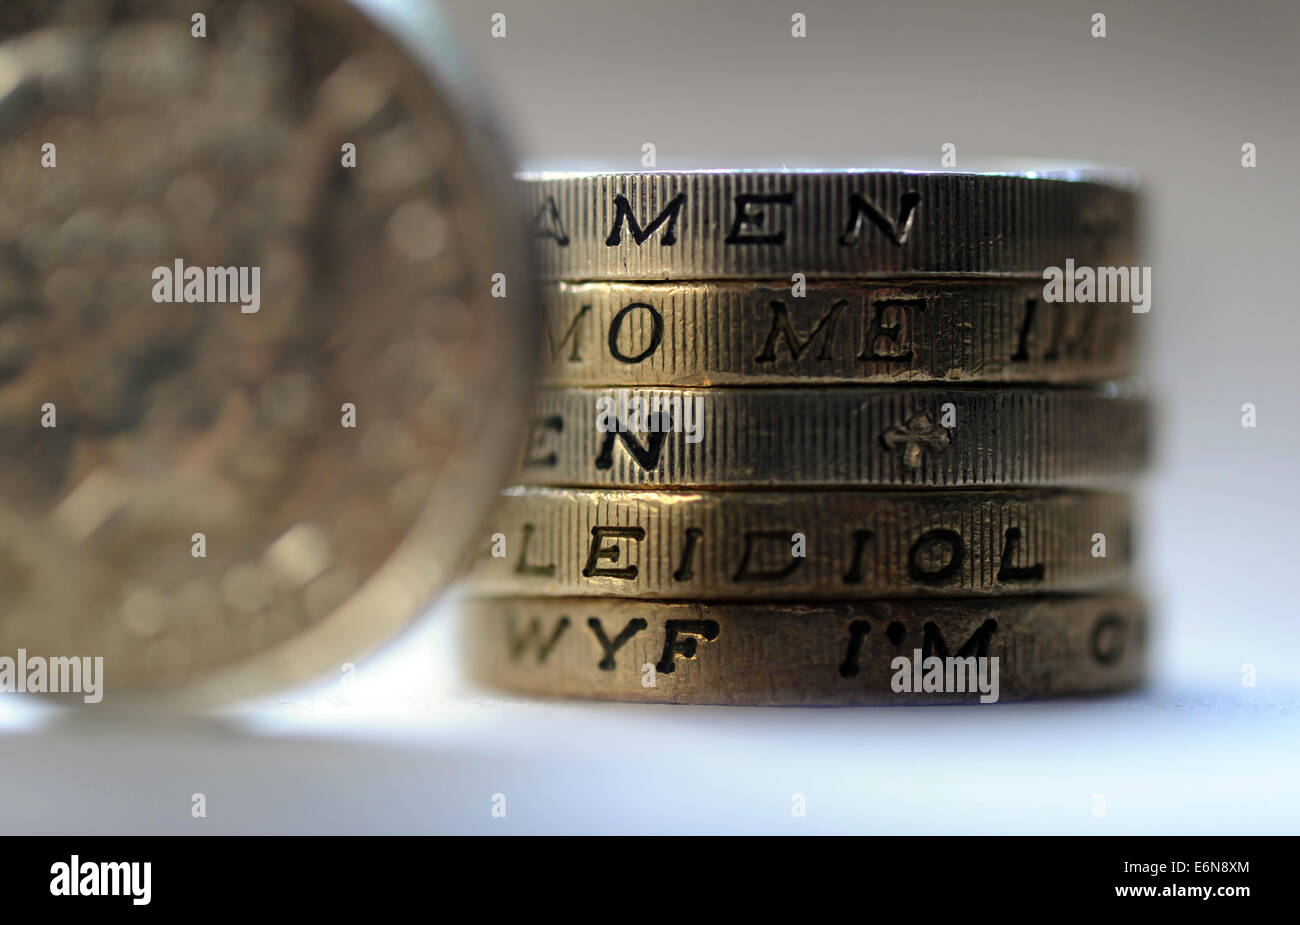 BRITISH ONE POUND COINS WITH EDGE LETTERS SPELLING 'MONEY' RE WAGES INCOMES MORTGAGES CURRENCY HOUSEHOLD - Stock Image